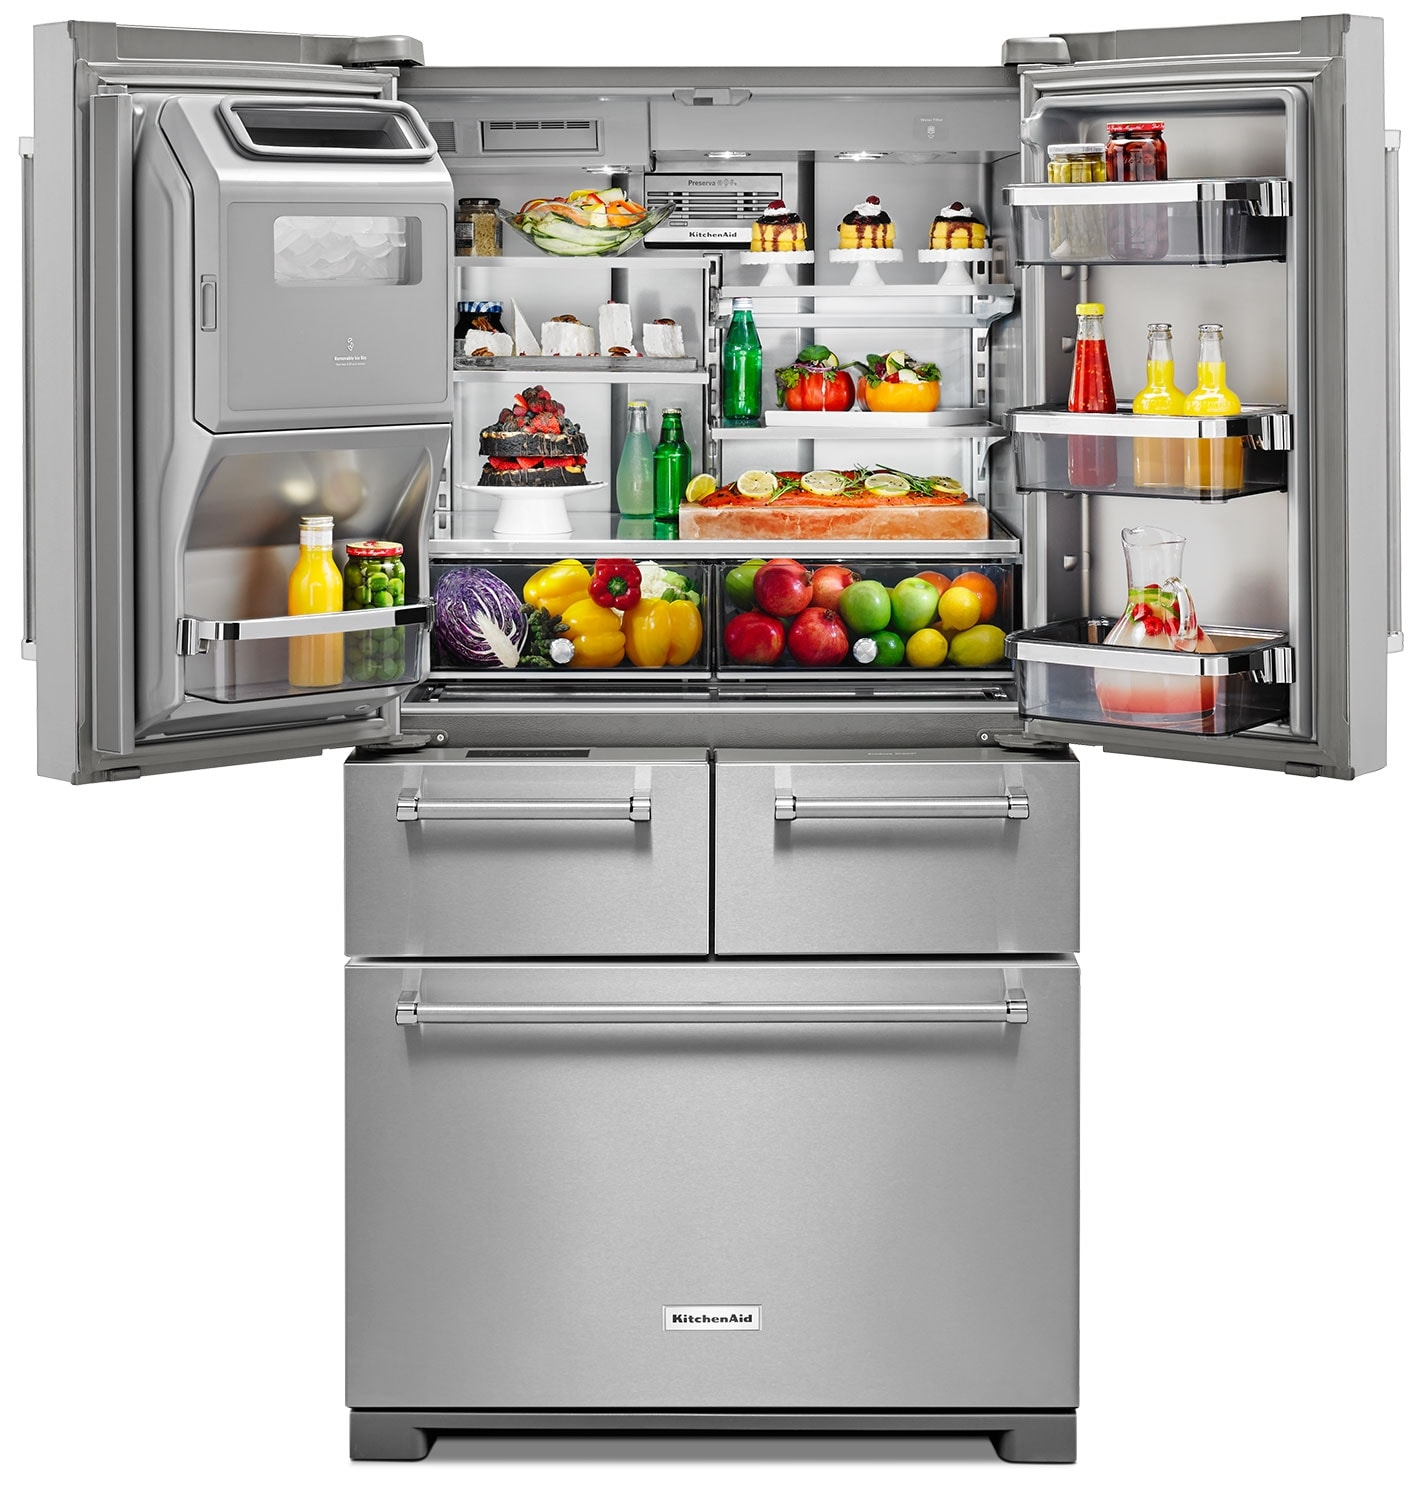 Kitchenaid 25 8 cu ft multi door refrigerator with for 0 kitchen appliances